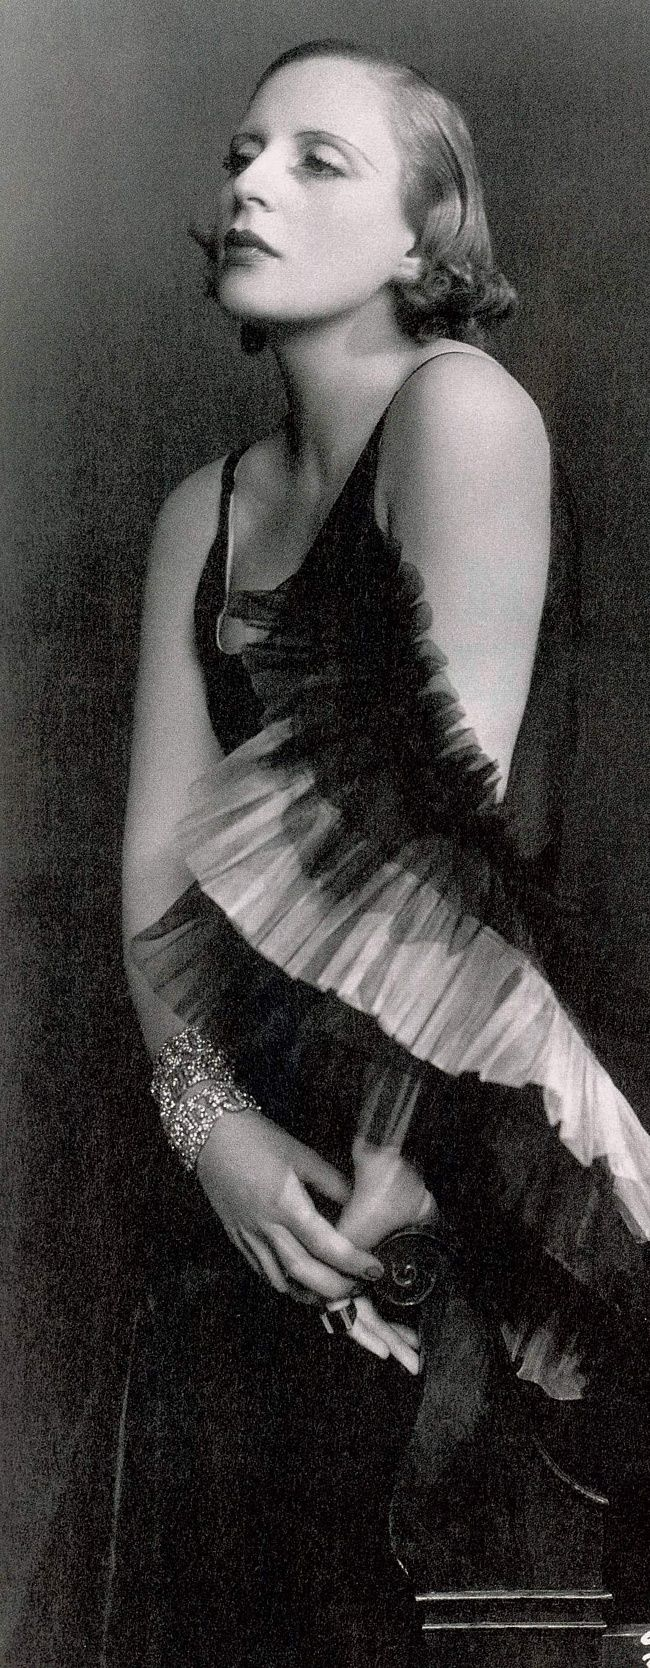 Tamara de Lempicka, aka Maria Górska - 1929 - Dress by Marcel Rochas - Photo by Dora Kallmus, Studio d'Ora, Paris